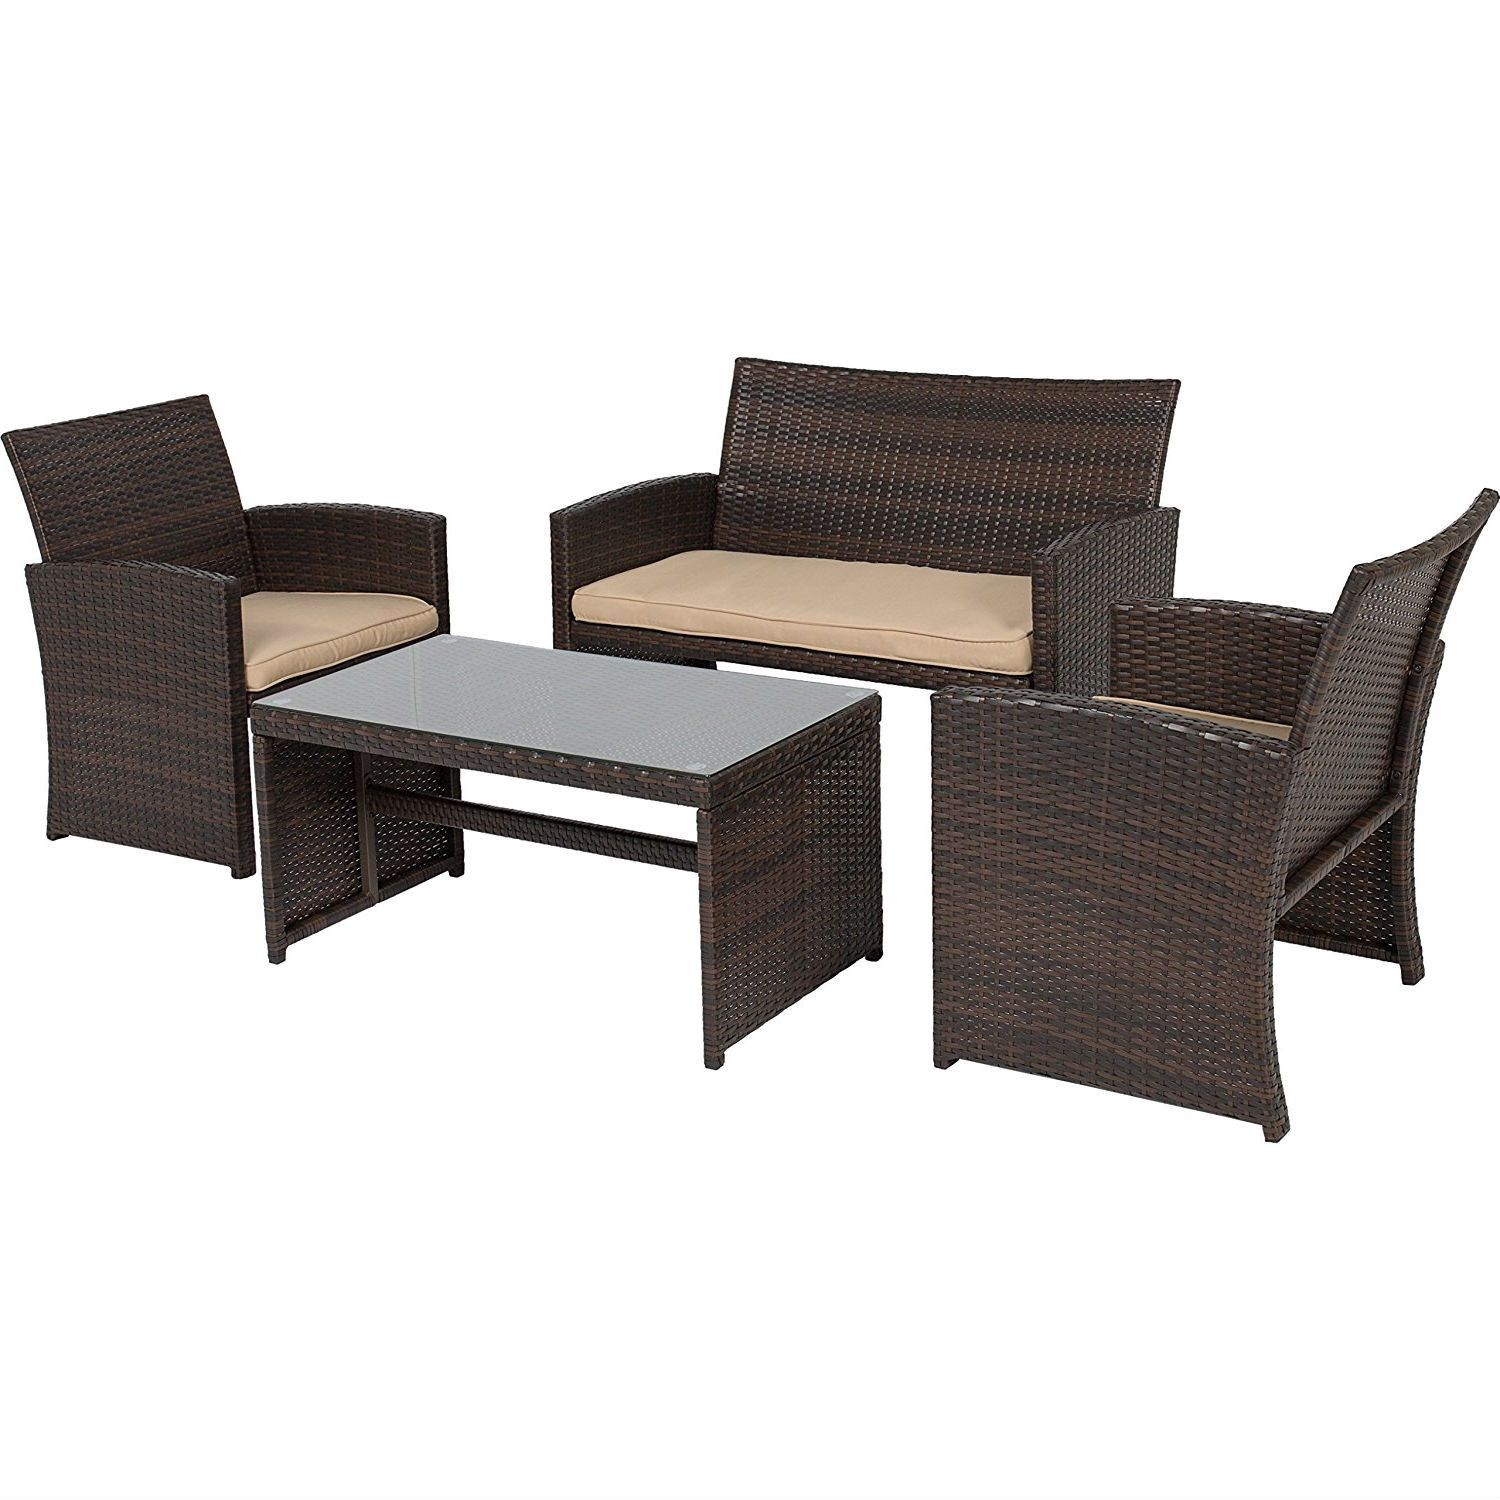 Brown Resin Wicker 4 Piece Modern Patio Furniture Set with Beige